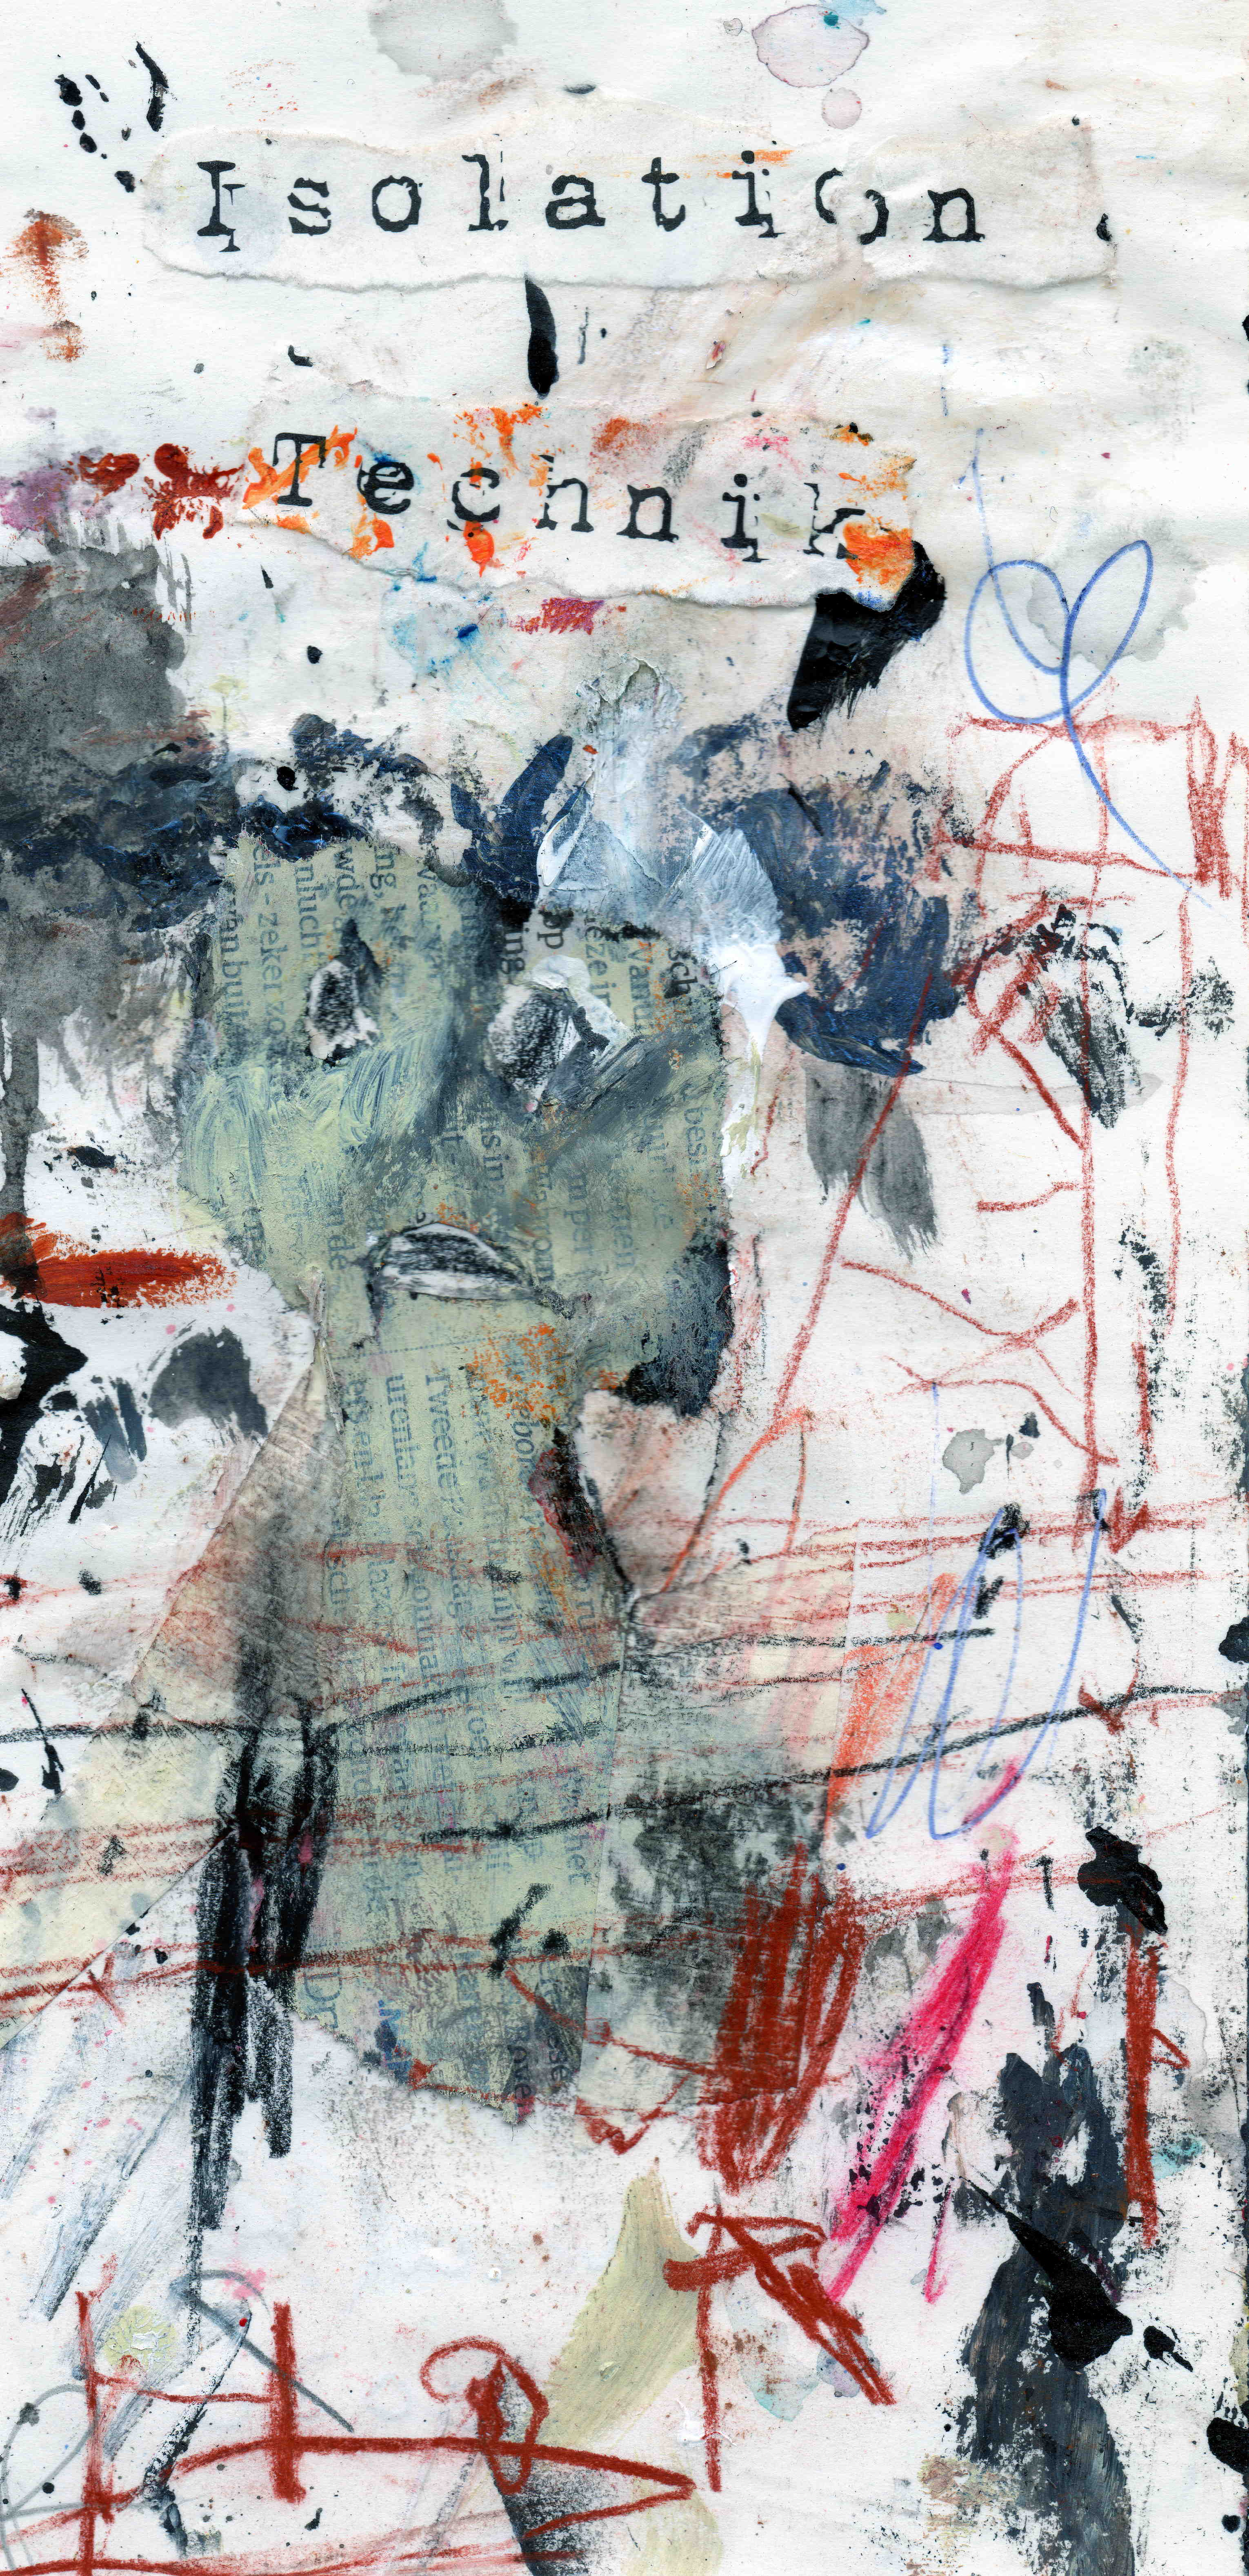 MH27 We never learn, mixed media on paper, 11 x 22,9 cm, 2020